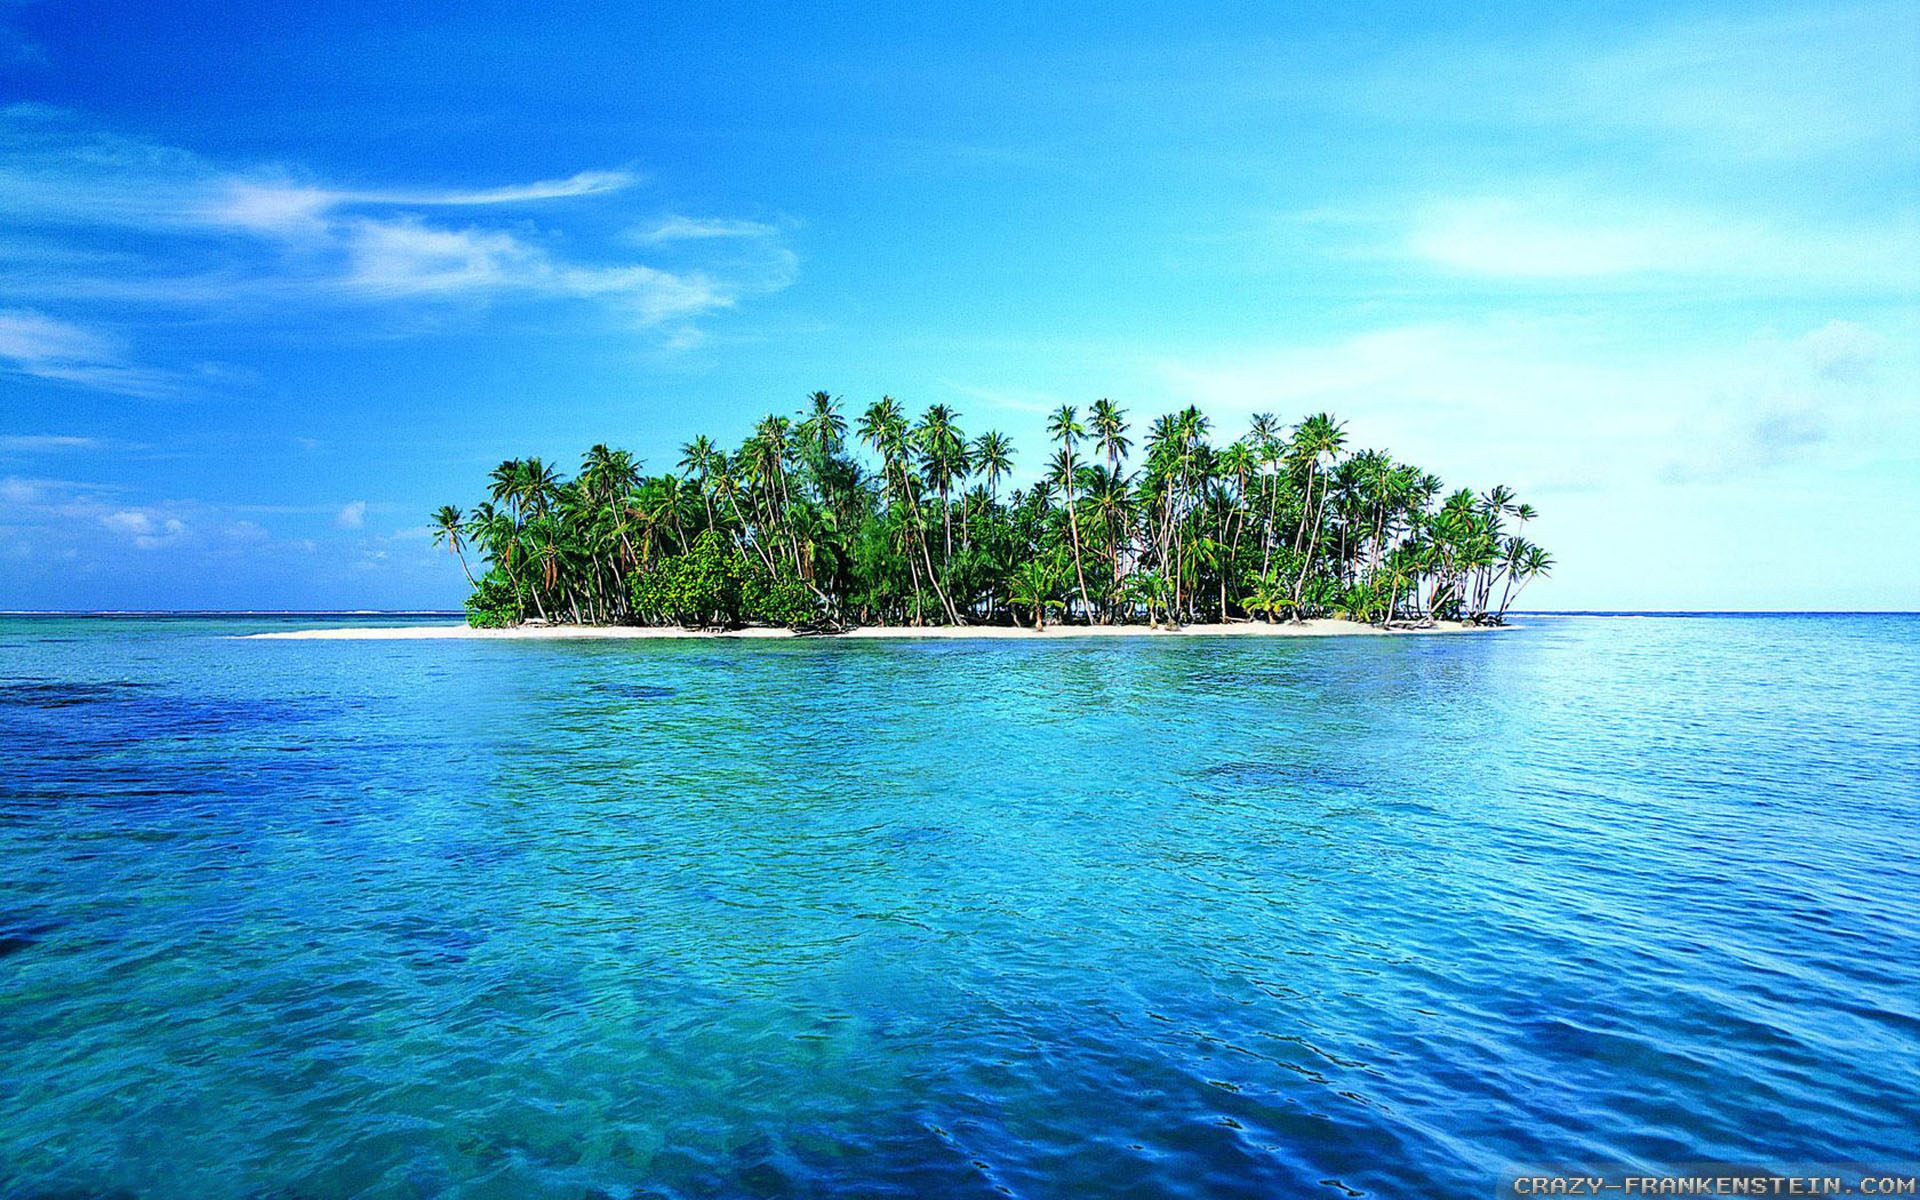 Wallpaper: Island Resolution: 1024x768 | 1280x1024 | 1600x1200. Widescreen Res: 1440x900 | 1680x1050 | 1920x1200